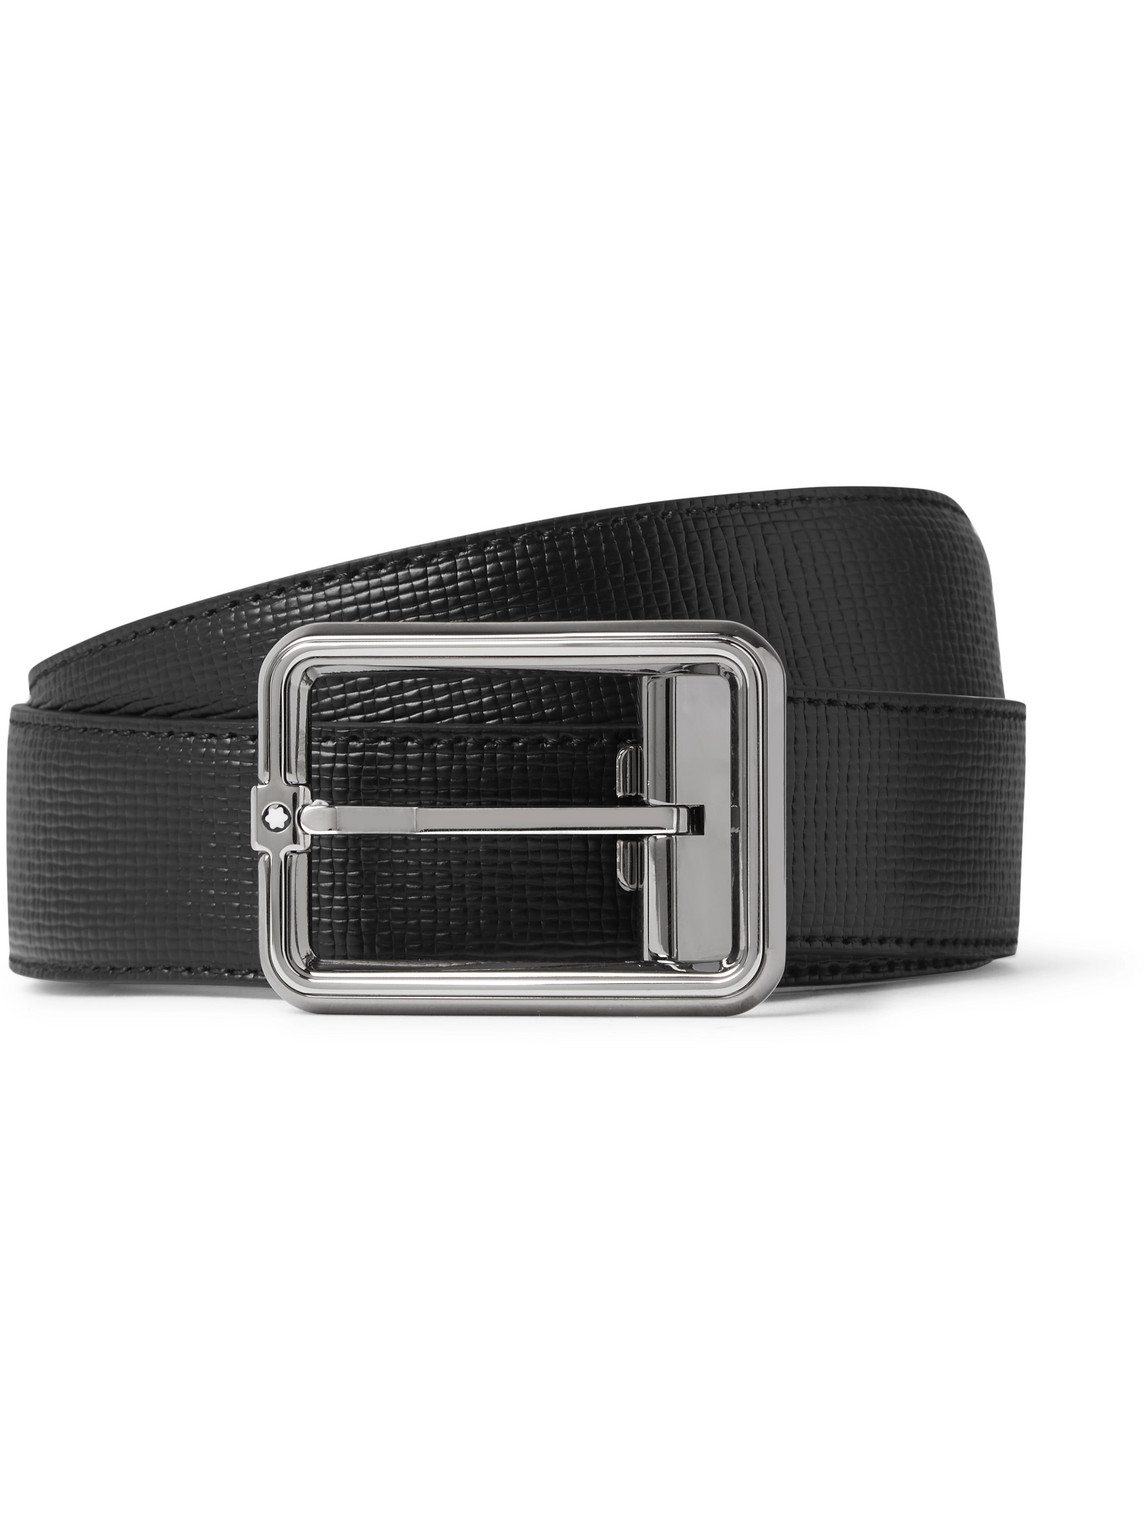 Montblanc 3cm Cross-grain Leather Belt In Black